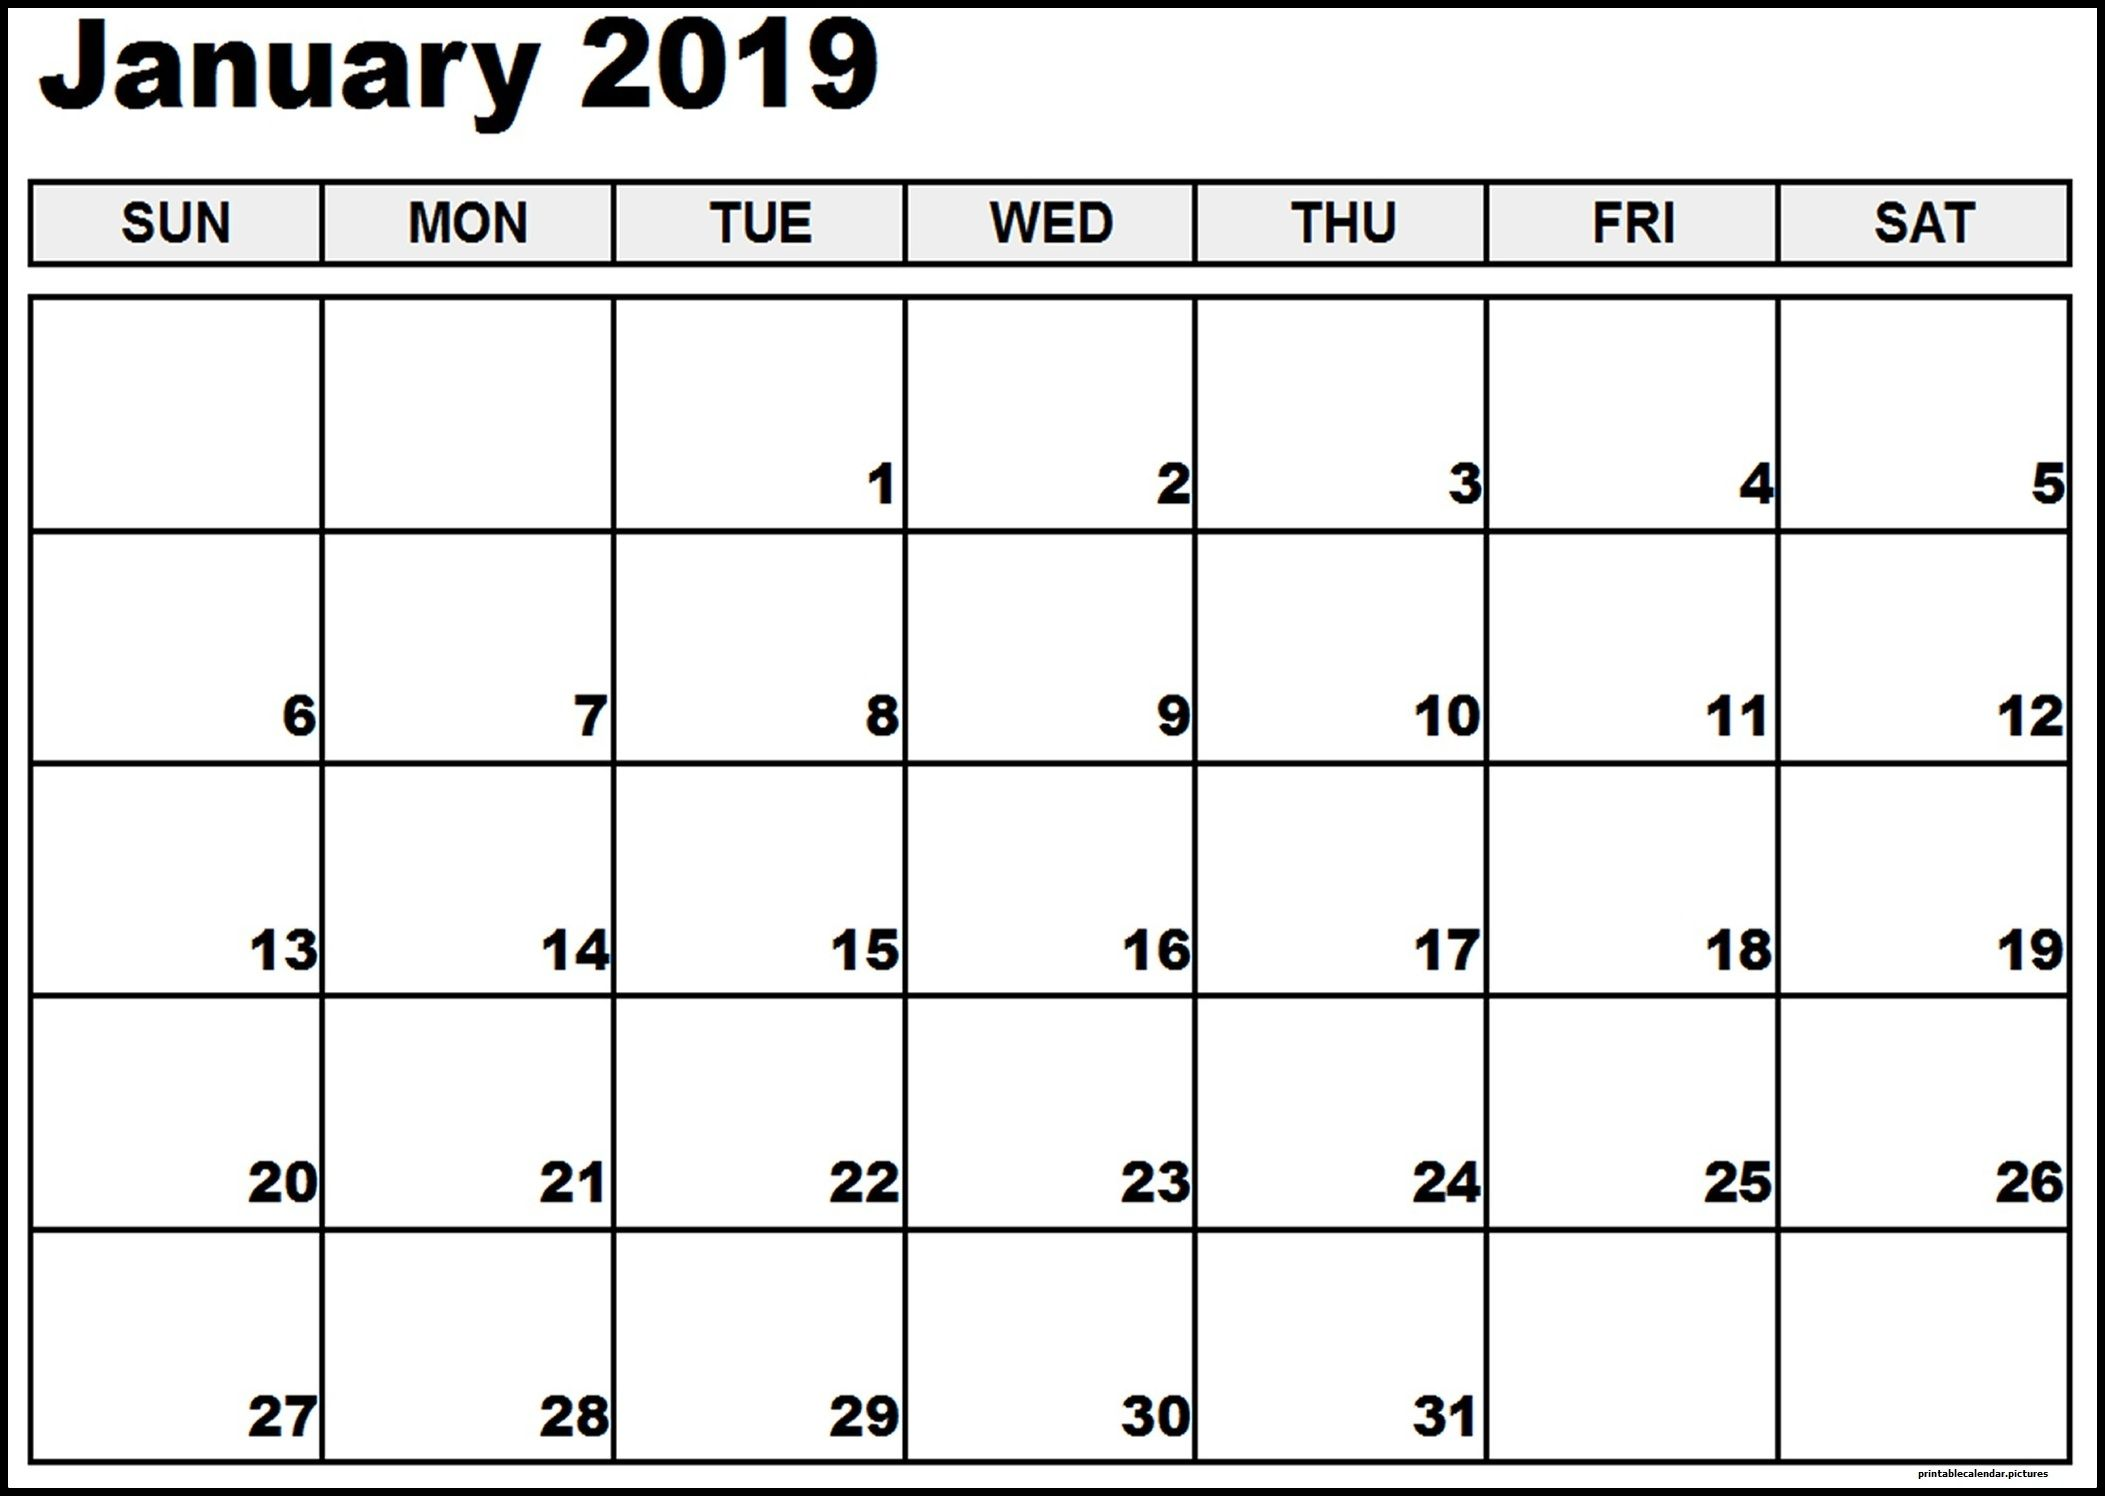 Free Printable January 2019 Calendar Pdf January 2019 Calendar Printable PDF Template Free | 150+ January